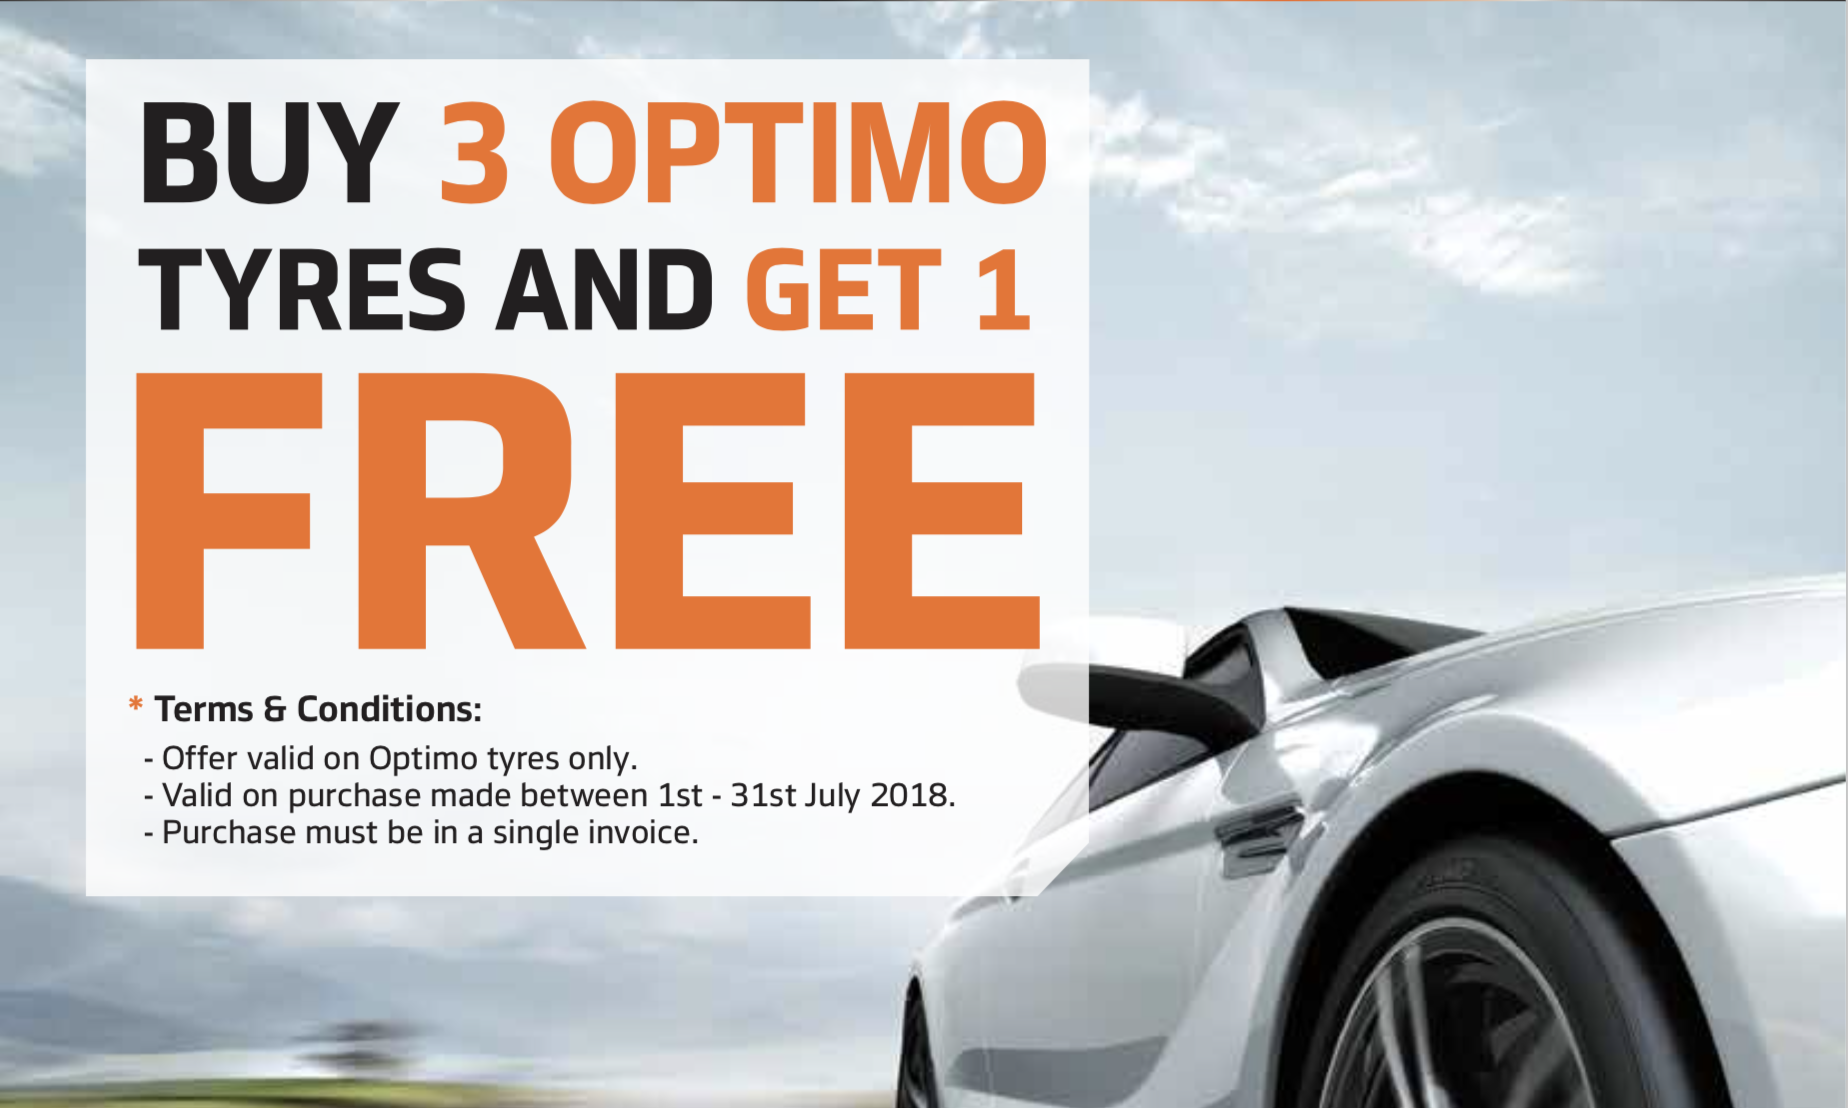 Buy 3 Optimo Tyres and get the 4th FREE